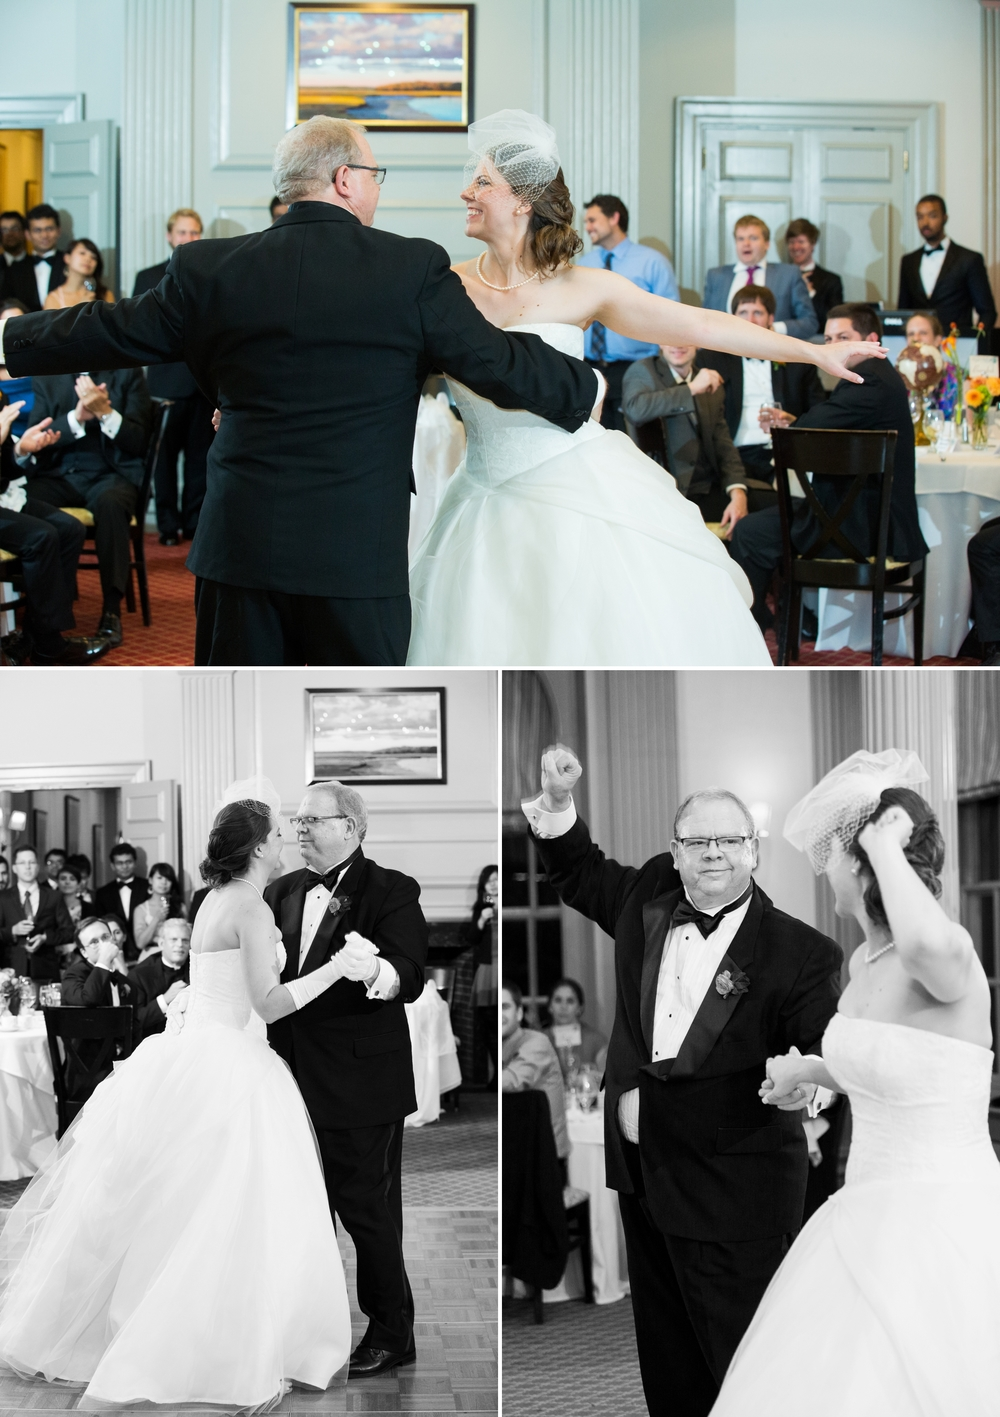 HarvardFacultyClubWedding_BostonMAFallWedding_MichelleGirardPhotography53.jpg